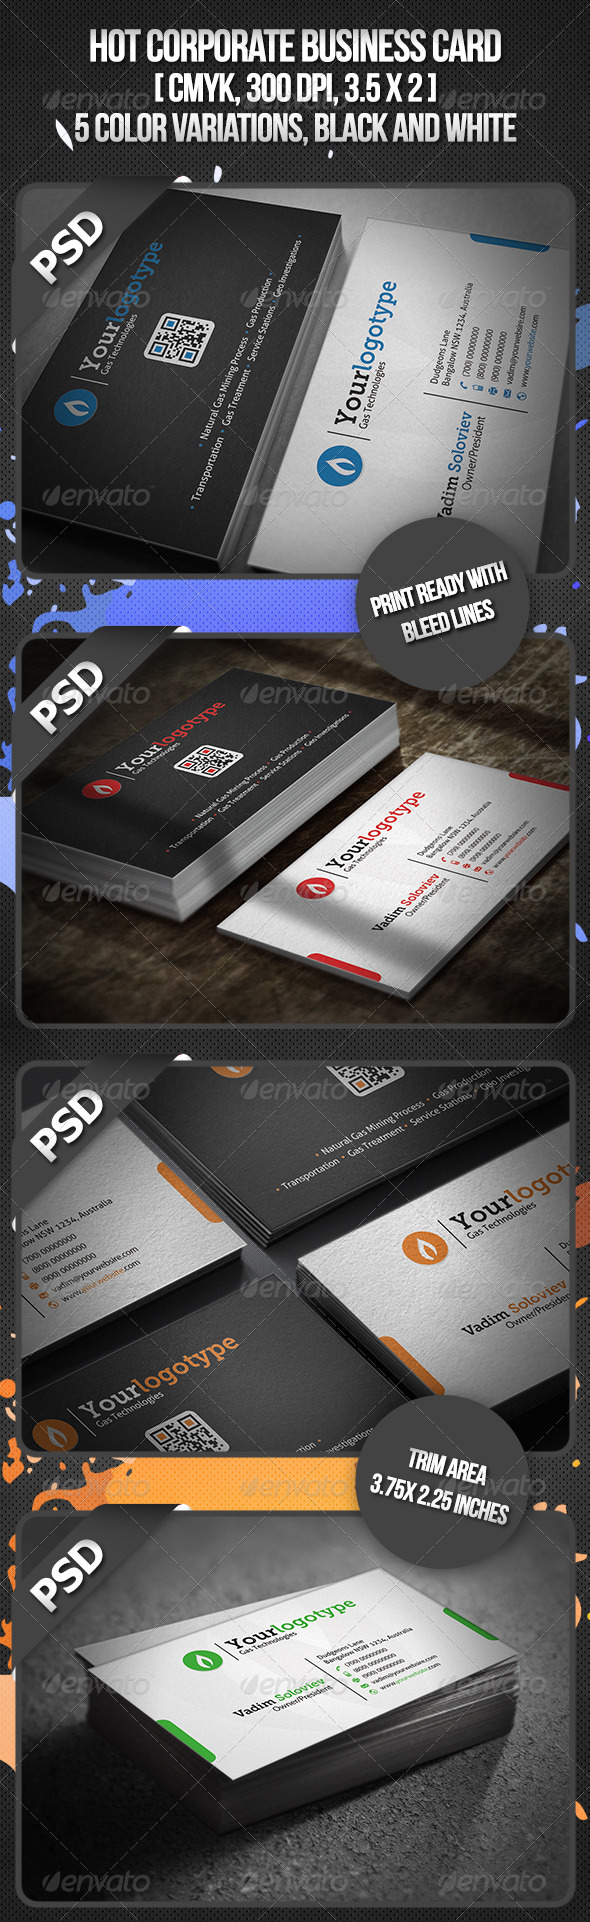 Hot Corporate Business Card - Corporate Business Cards